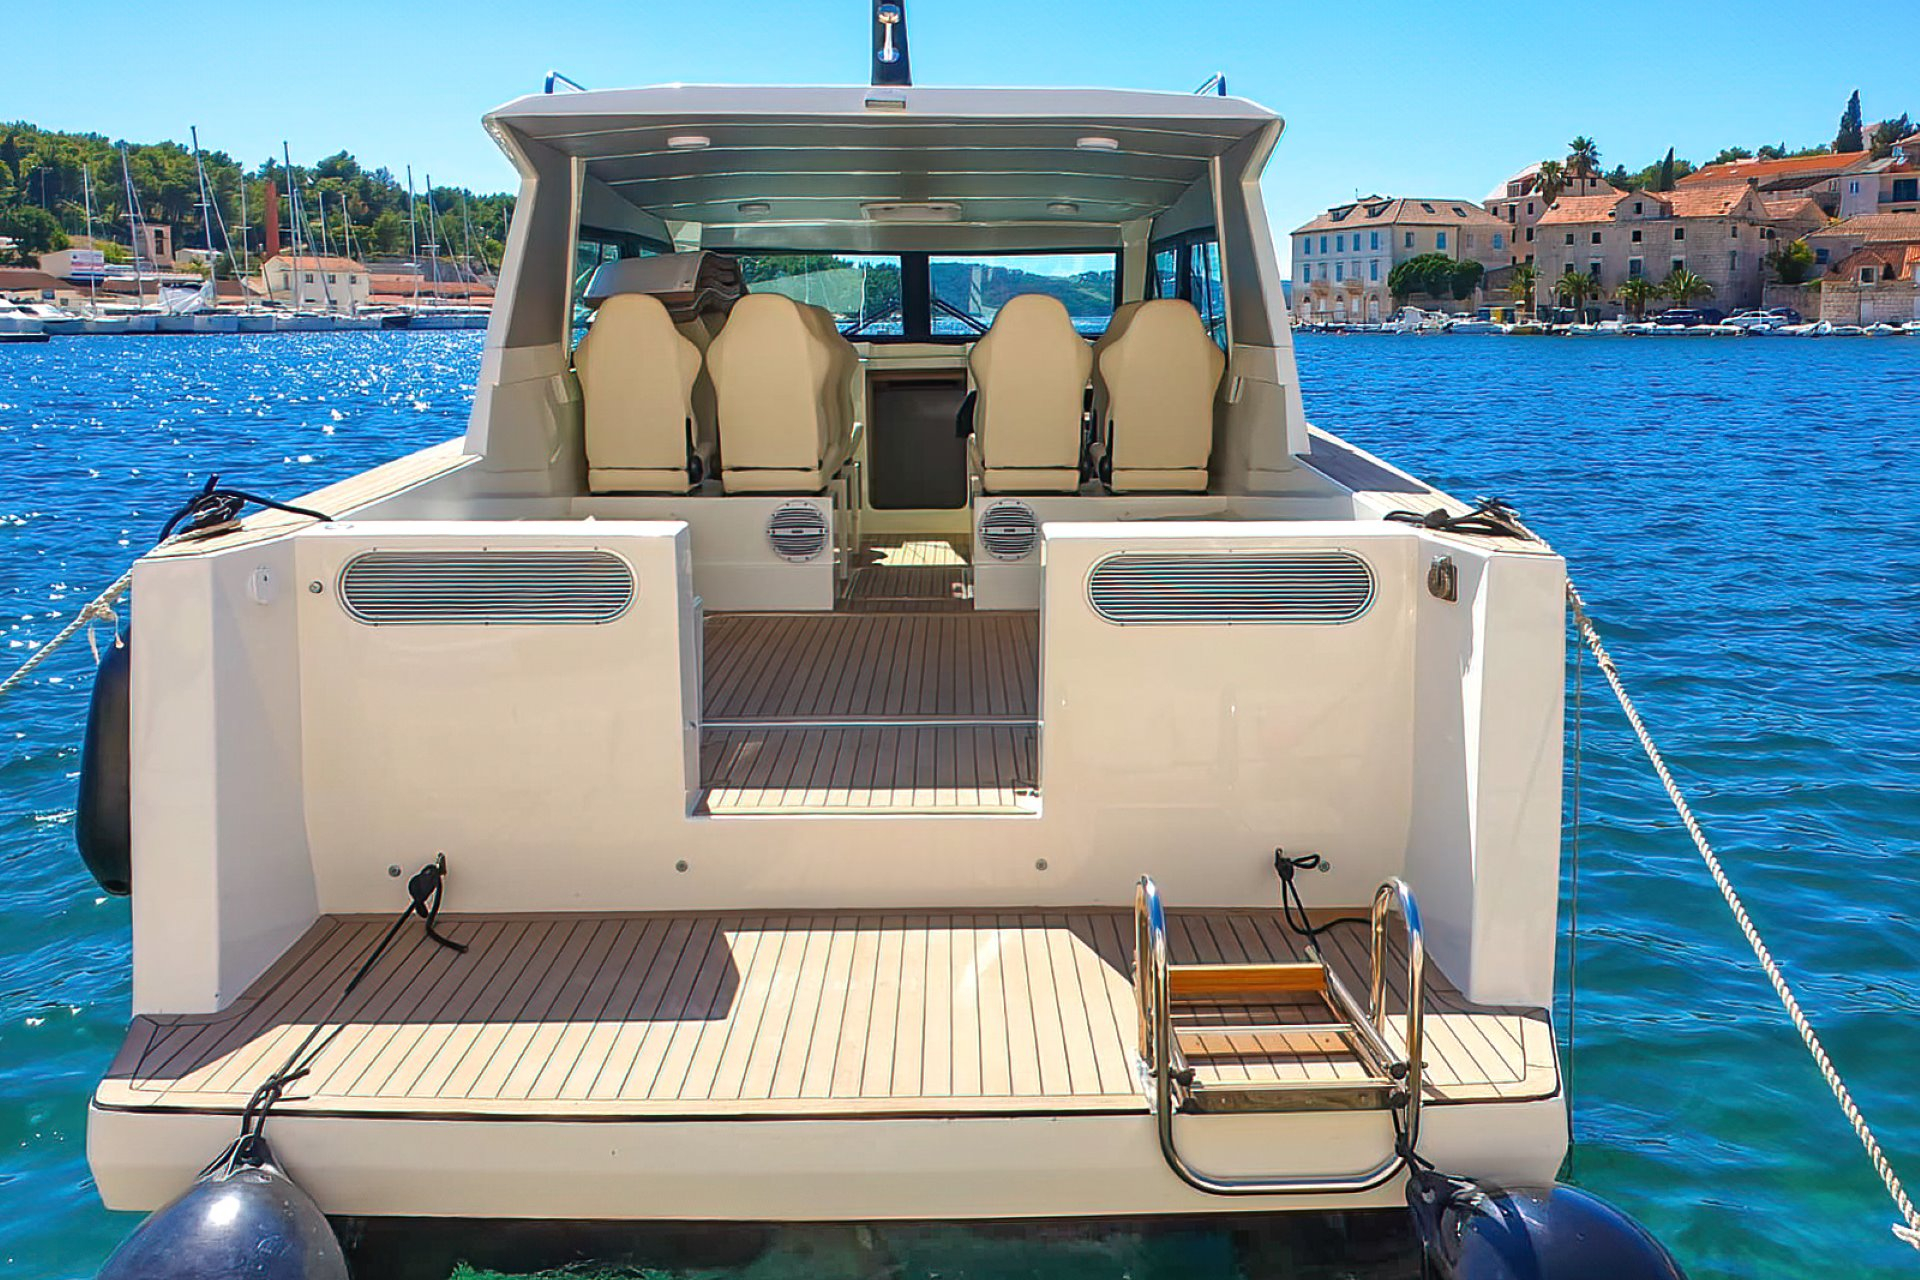 Seating area of 12m boat for boat tours from Split and Brac